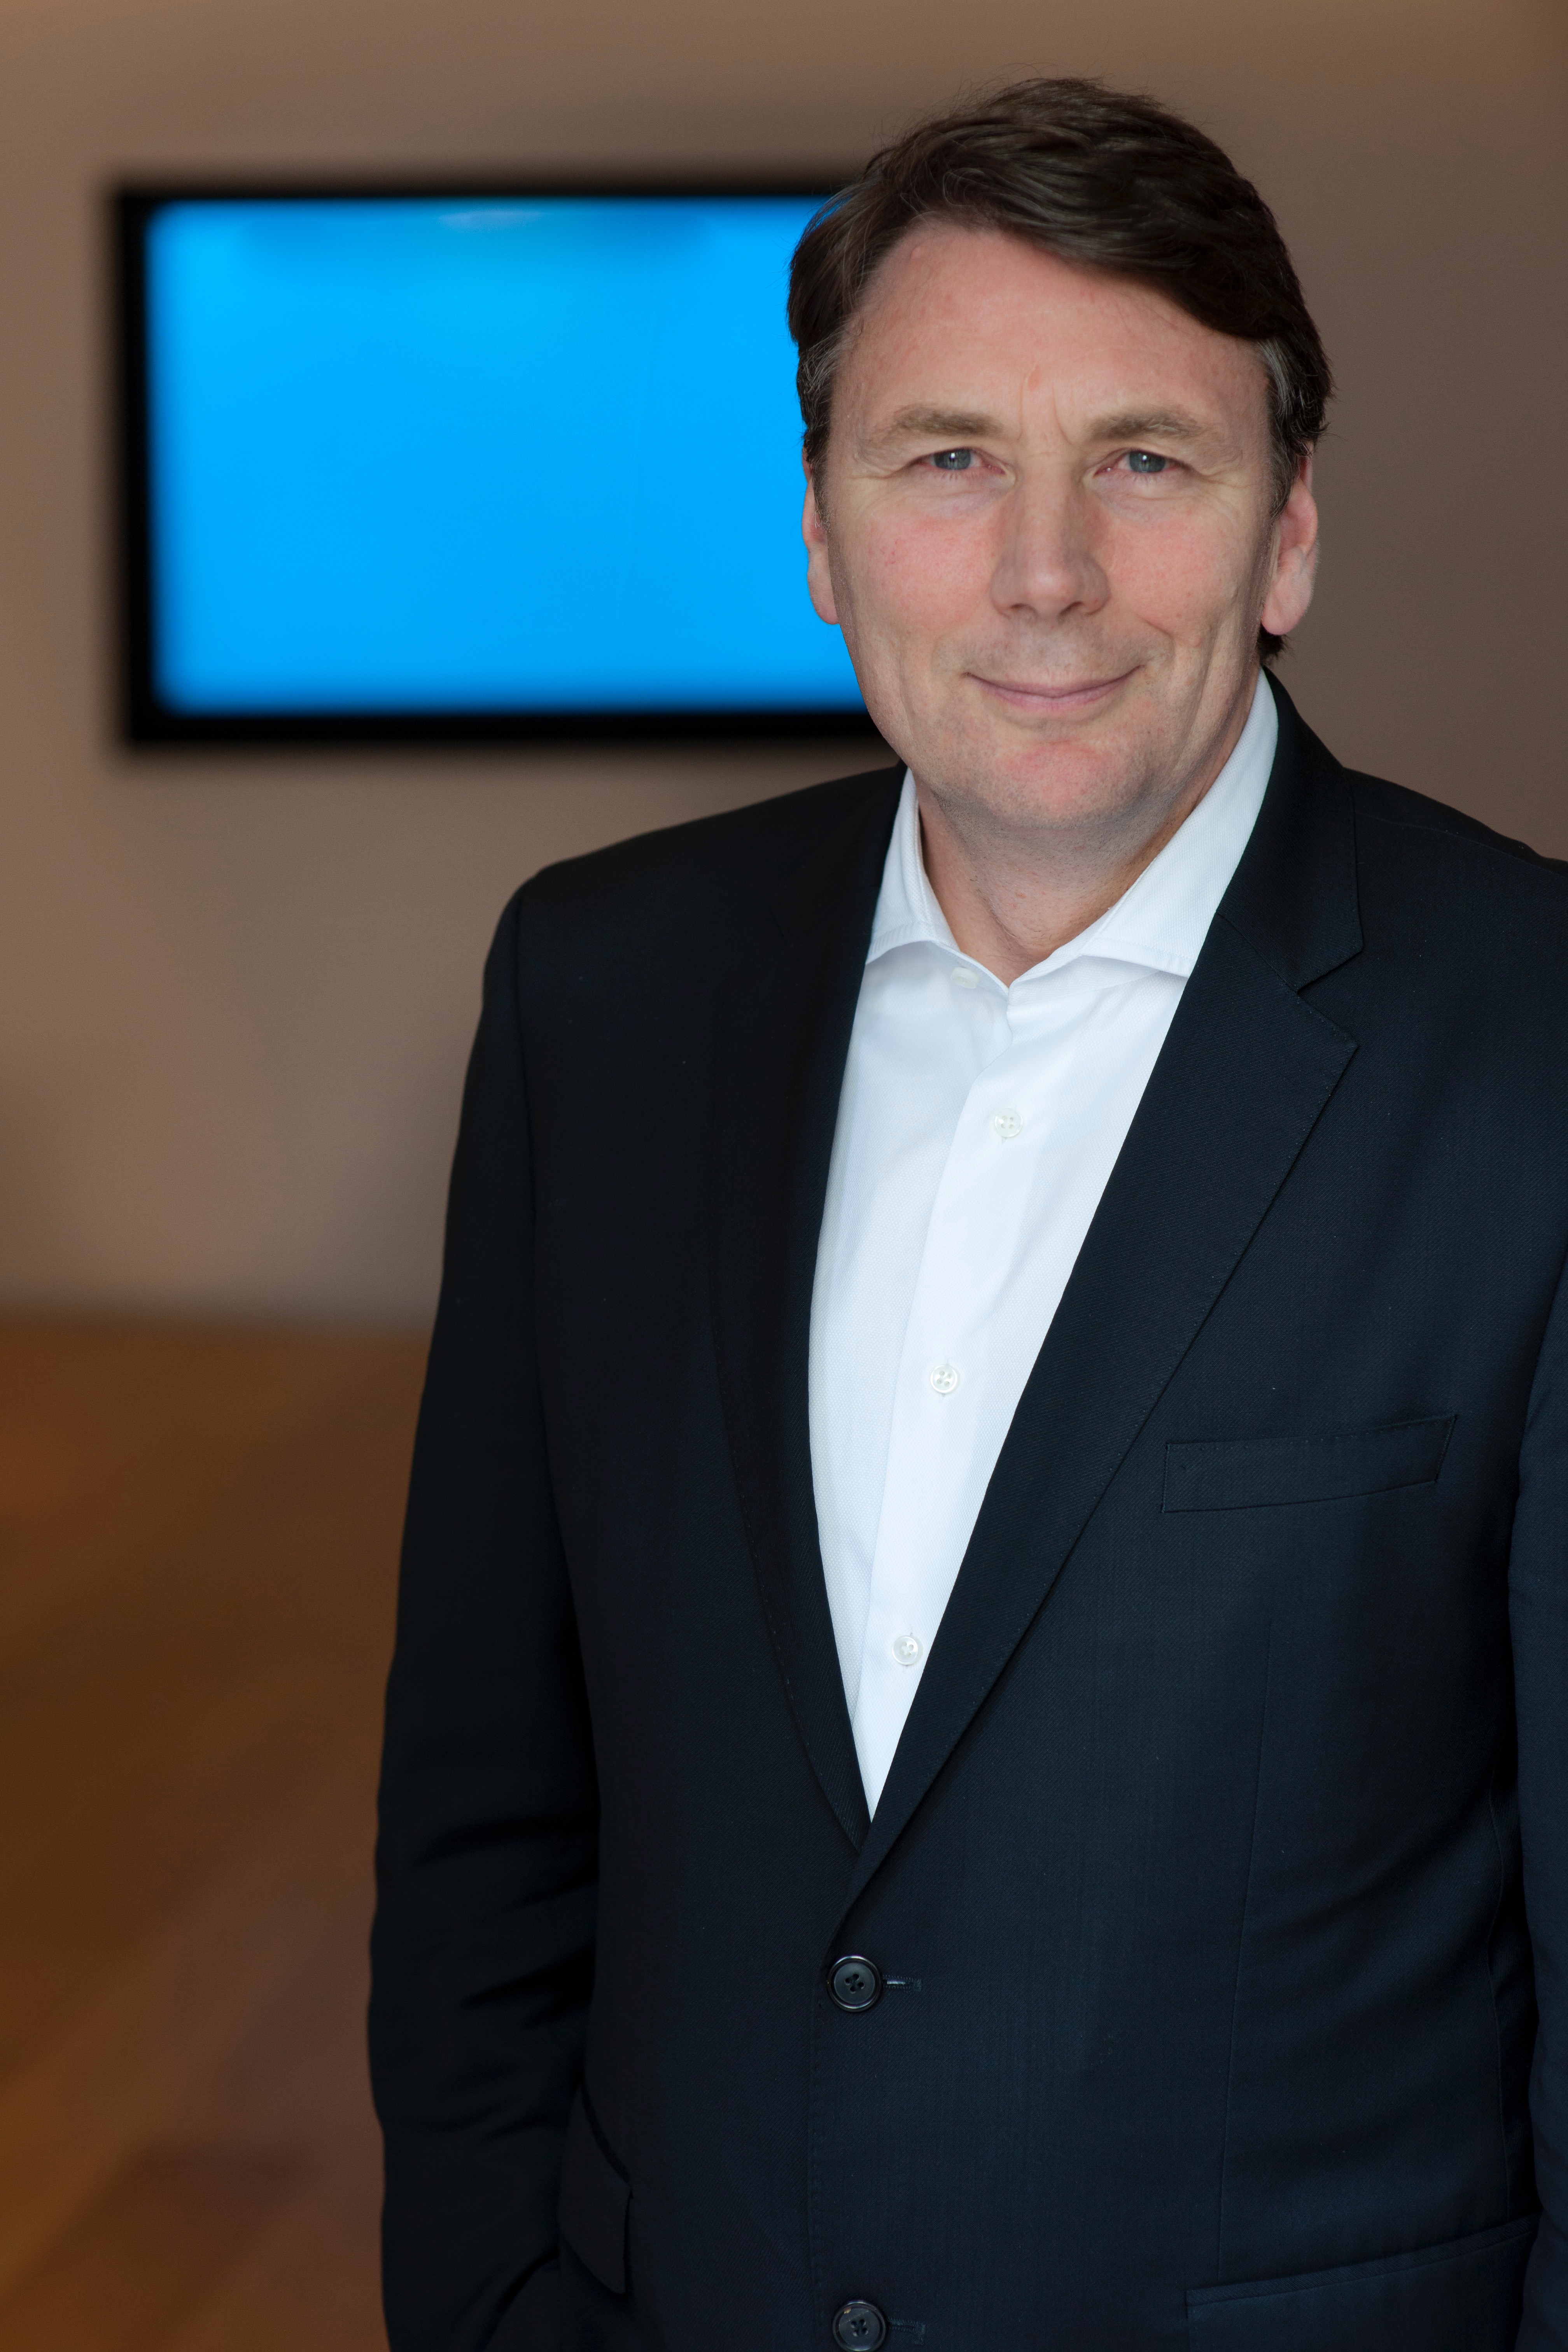 Portrait image of Mr David Thodey.